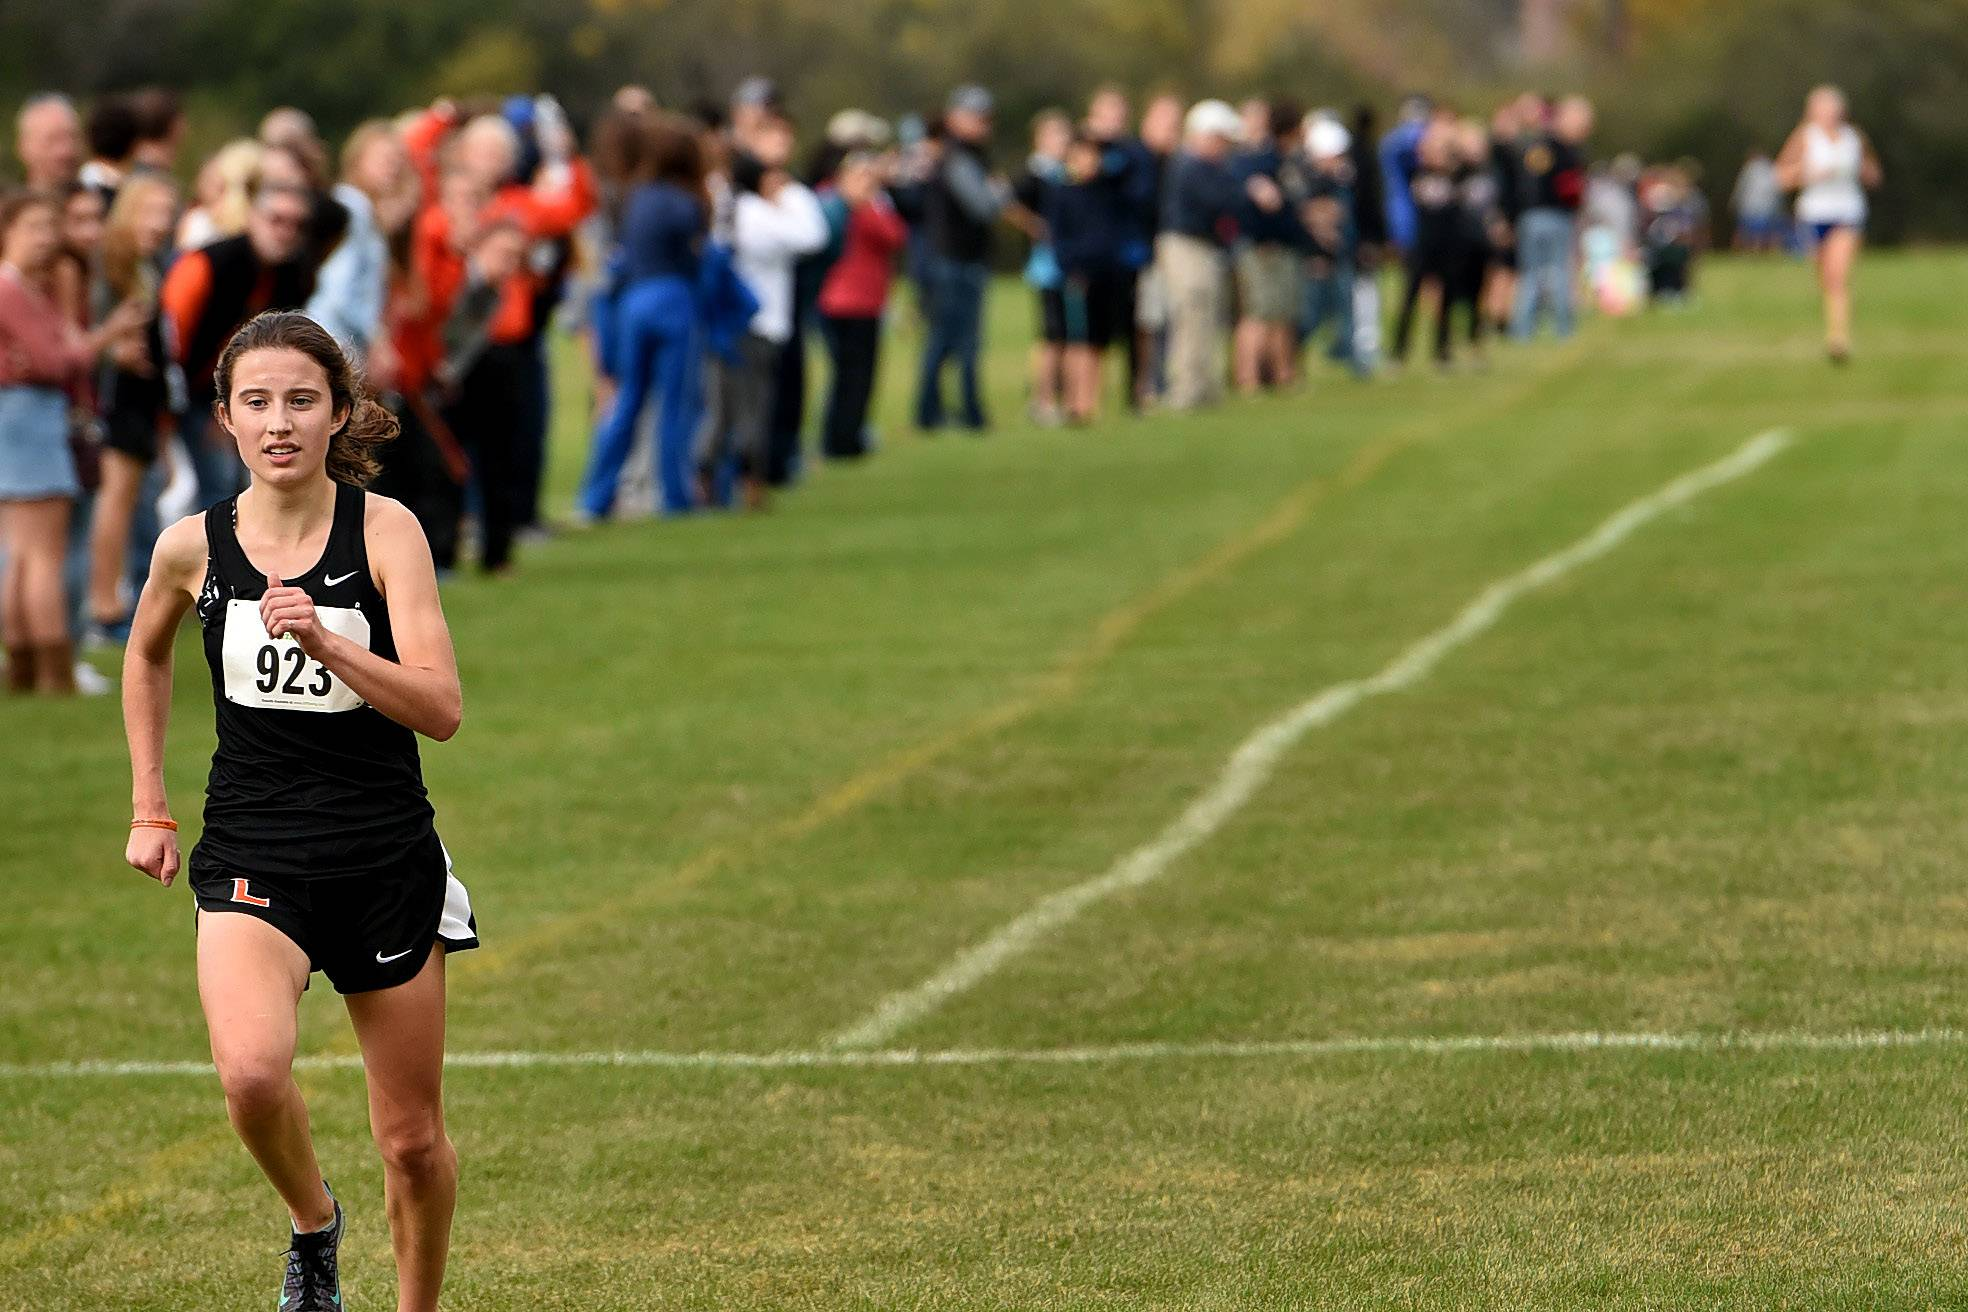 Melissa Manetsch of Libertyville has a huge lead in finishing ahead of Lake Forest's Brett Chody in the Class 3A Lake Forest regional. Manetsch finished in 16:57.8.